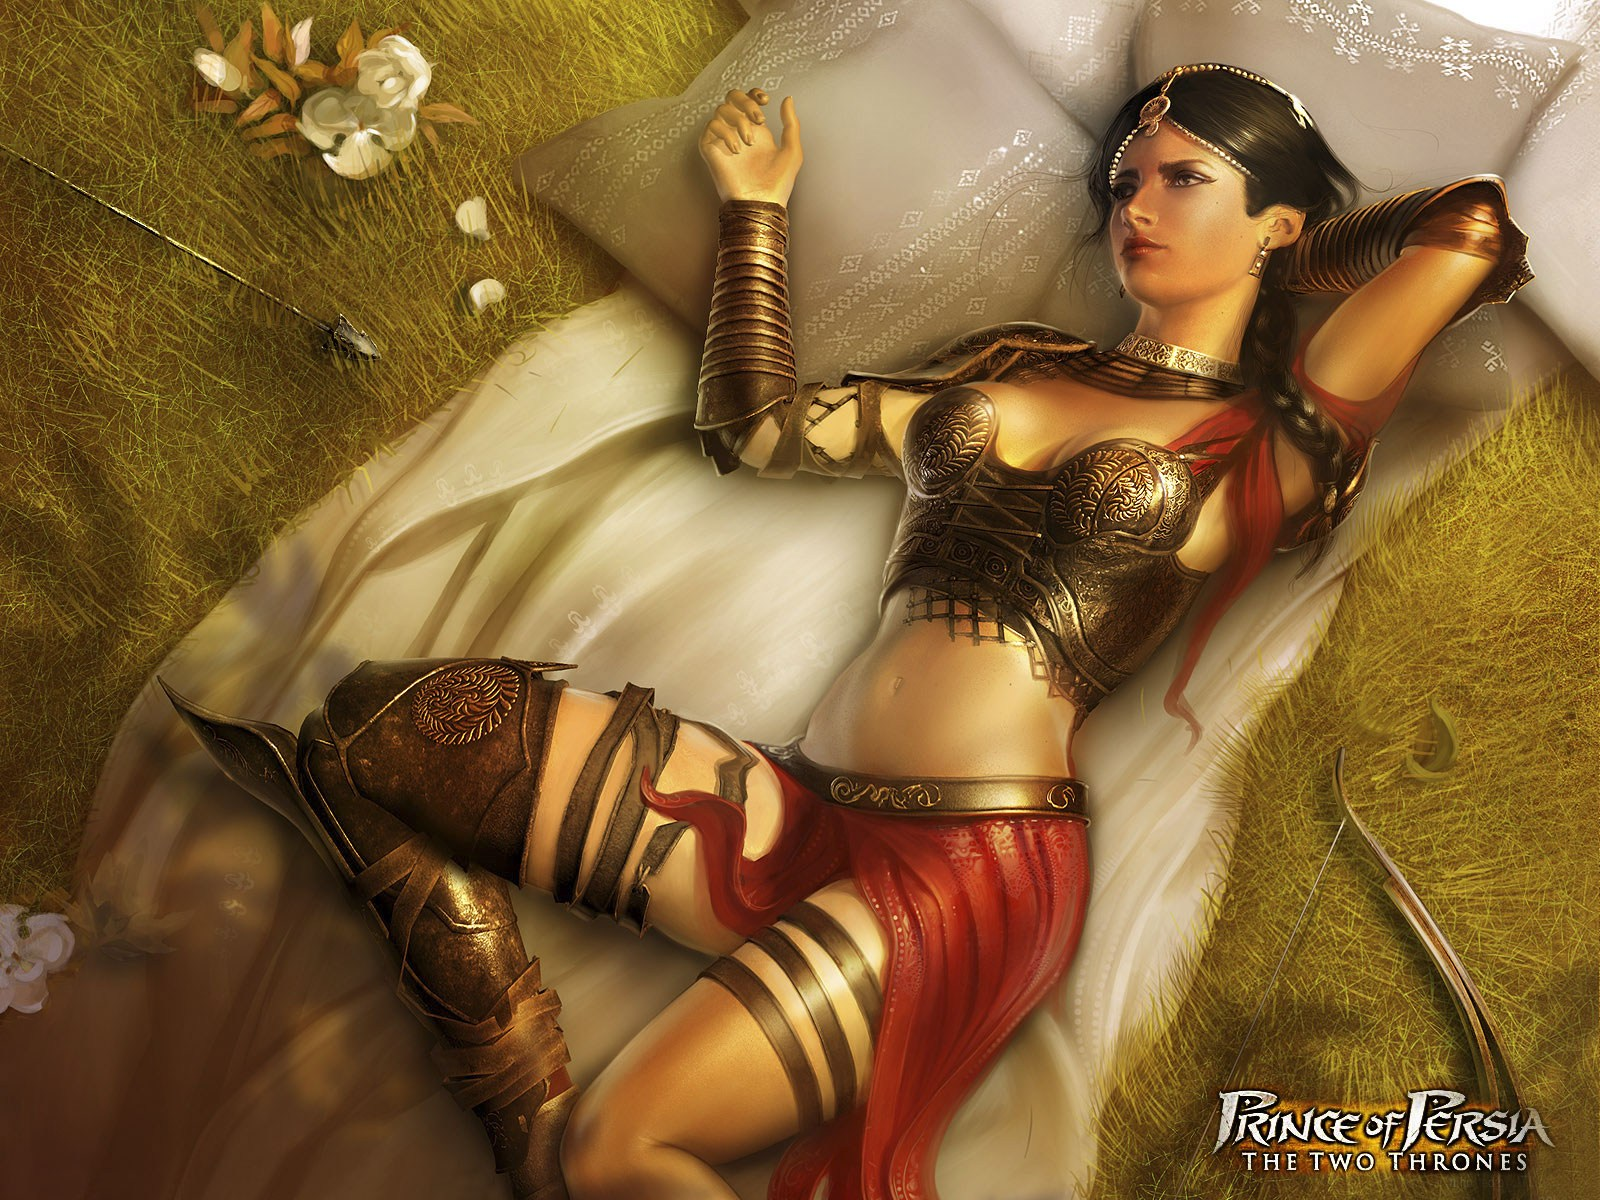 http://2.bp.blogspot.com/_wSPANO5qmhk/S7vyxAHoKXI/AAAAAAAAJDY/E7WNlRjDMdU/s1600/Prince-of-Persia-The-Two-Thrones--1265.jpg